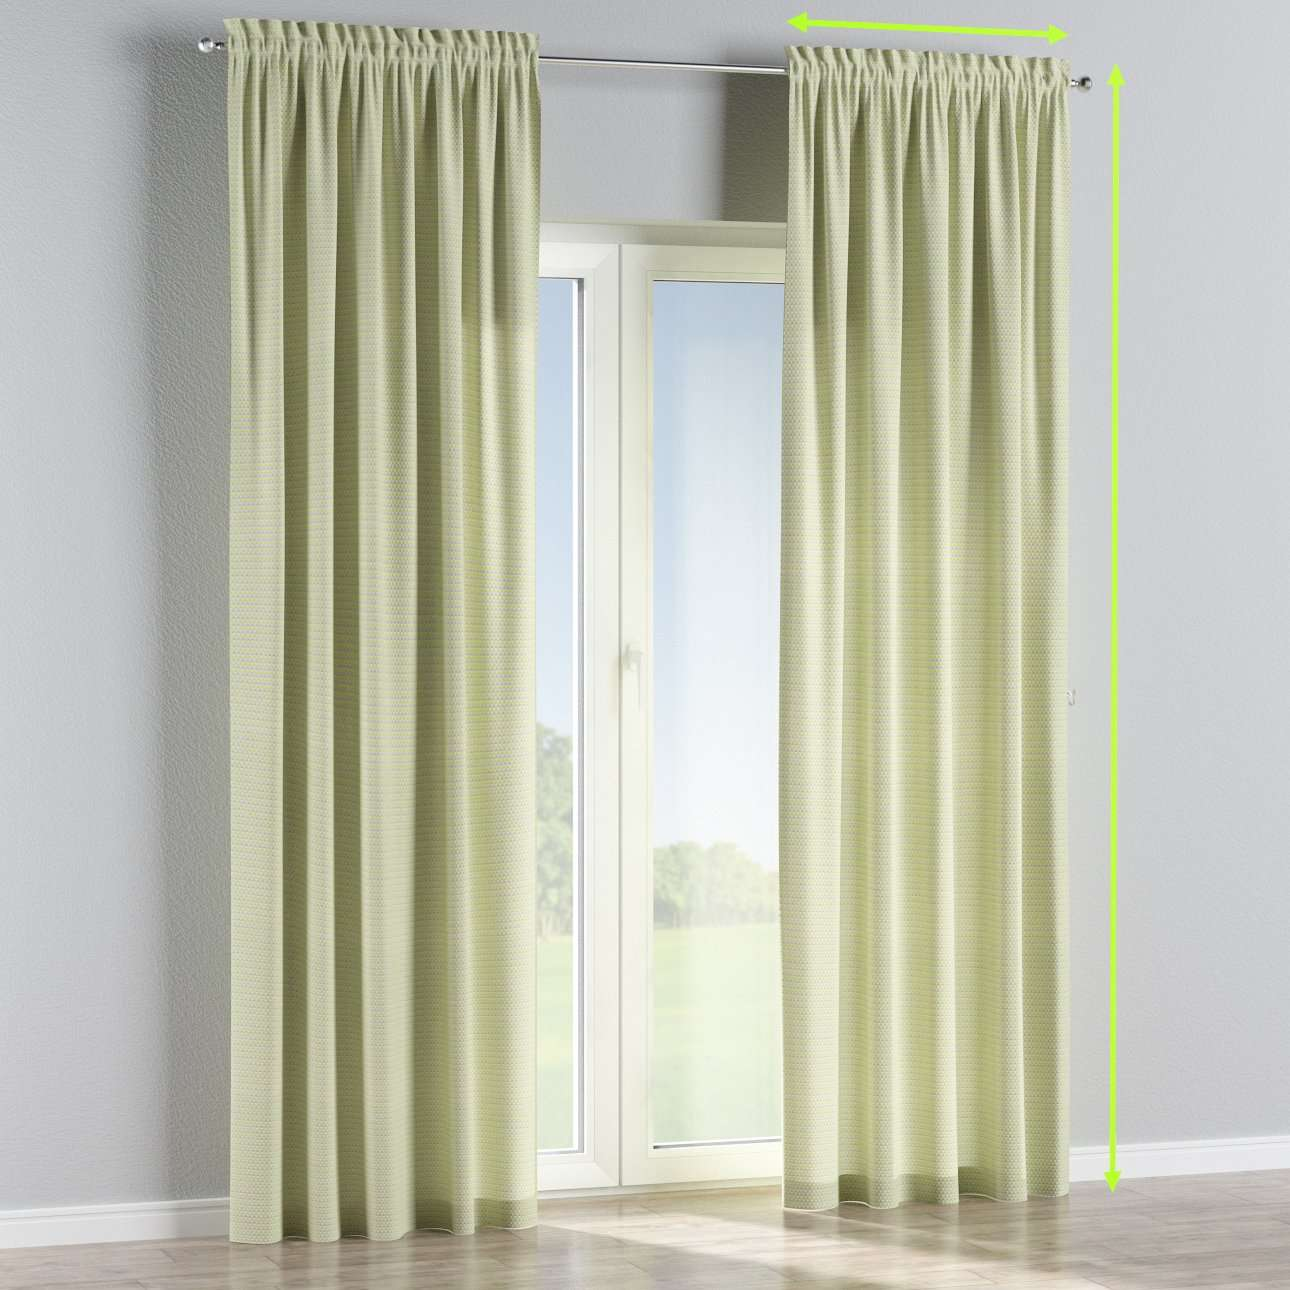 Slot and frill curtains in collection Rustica, fabric: 140-34